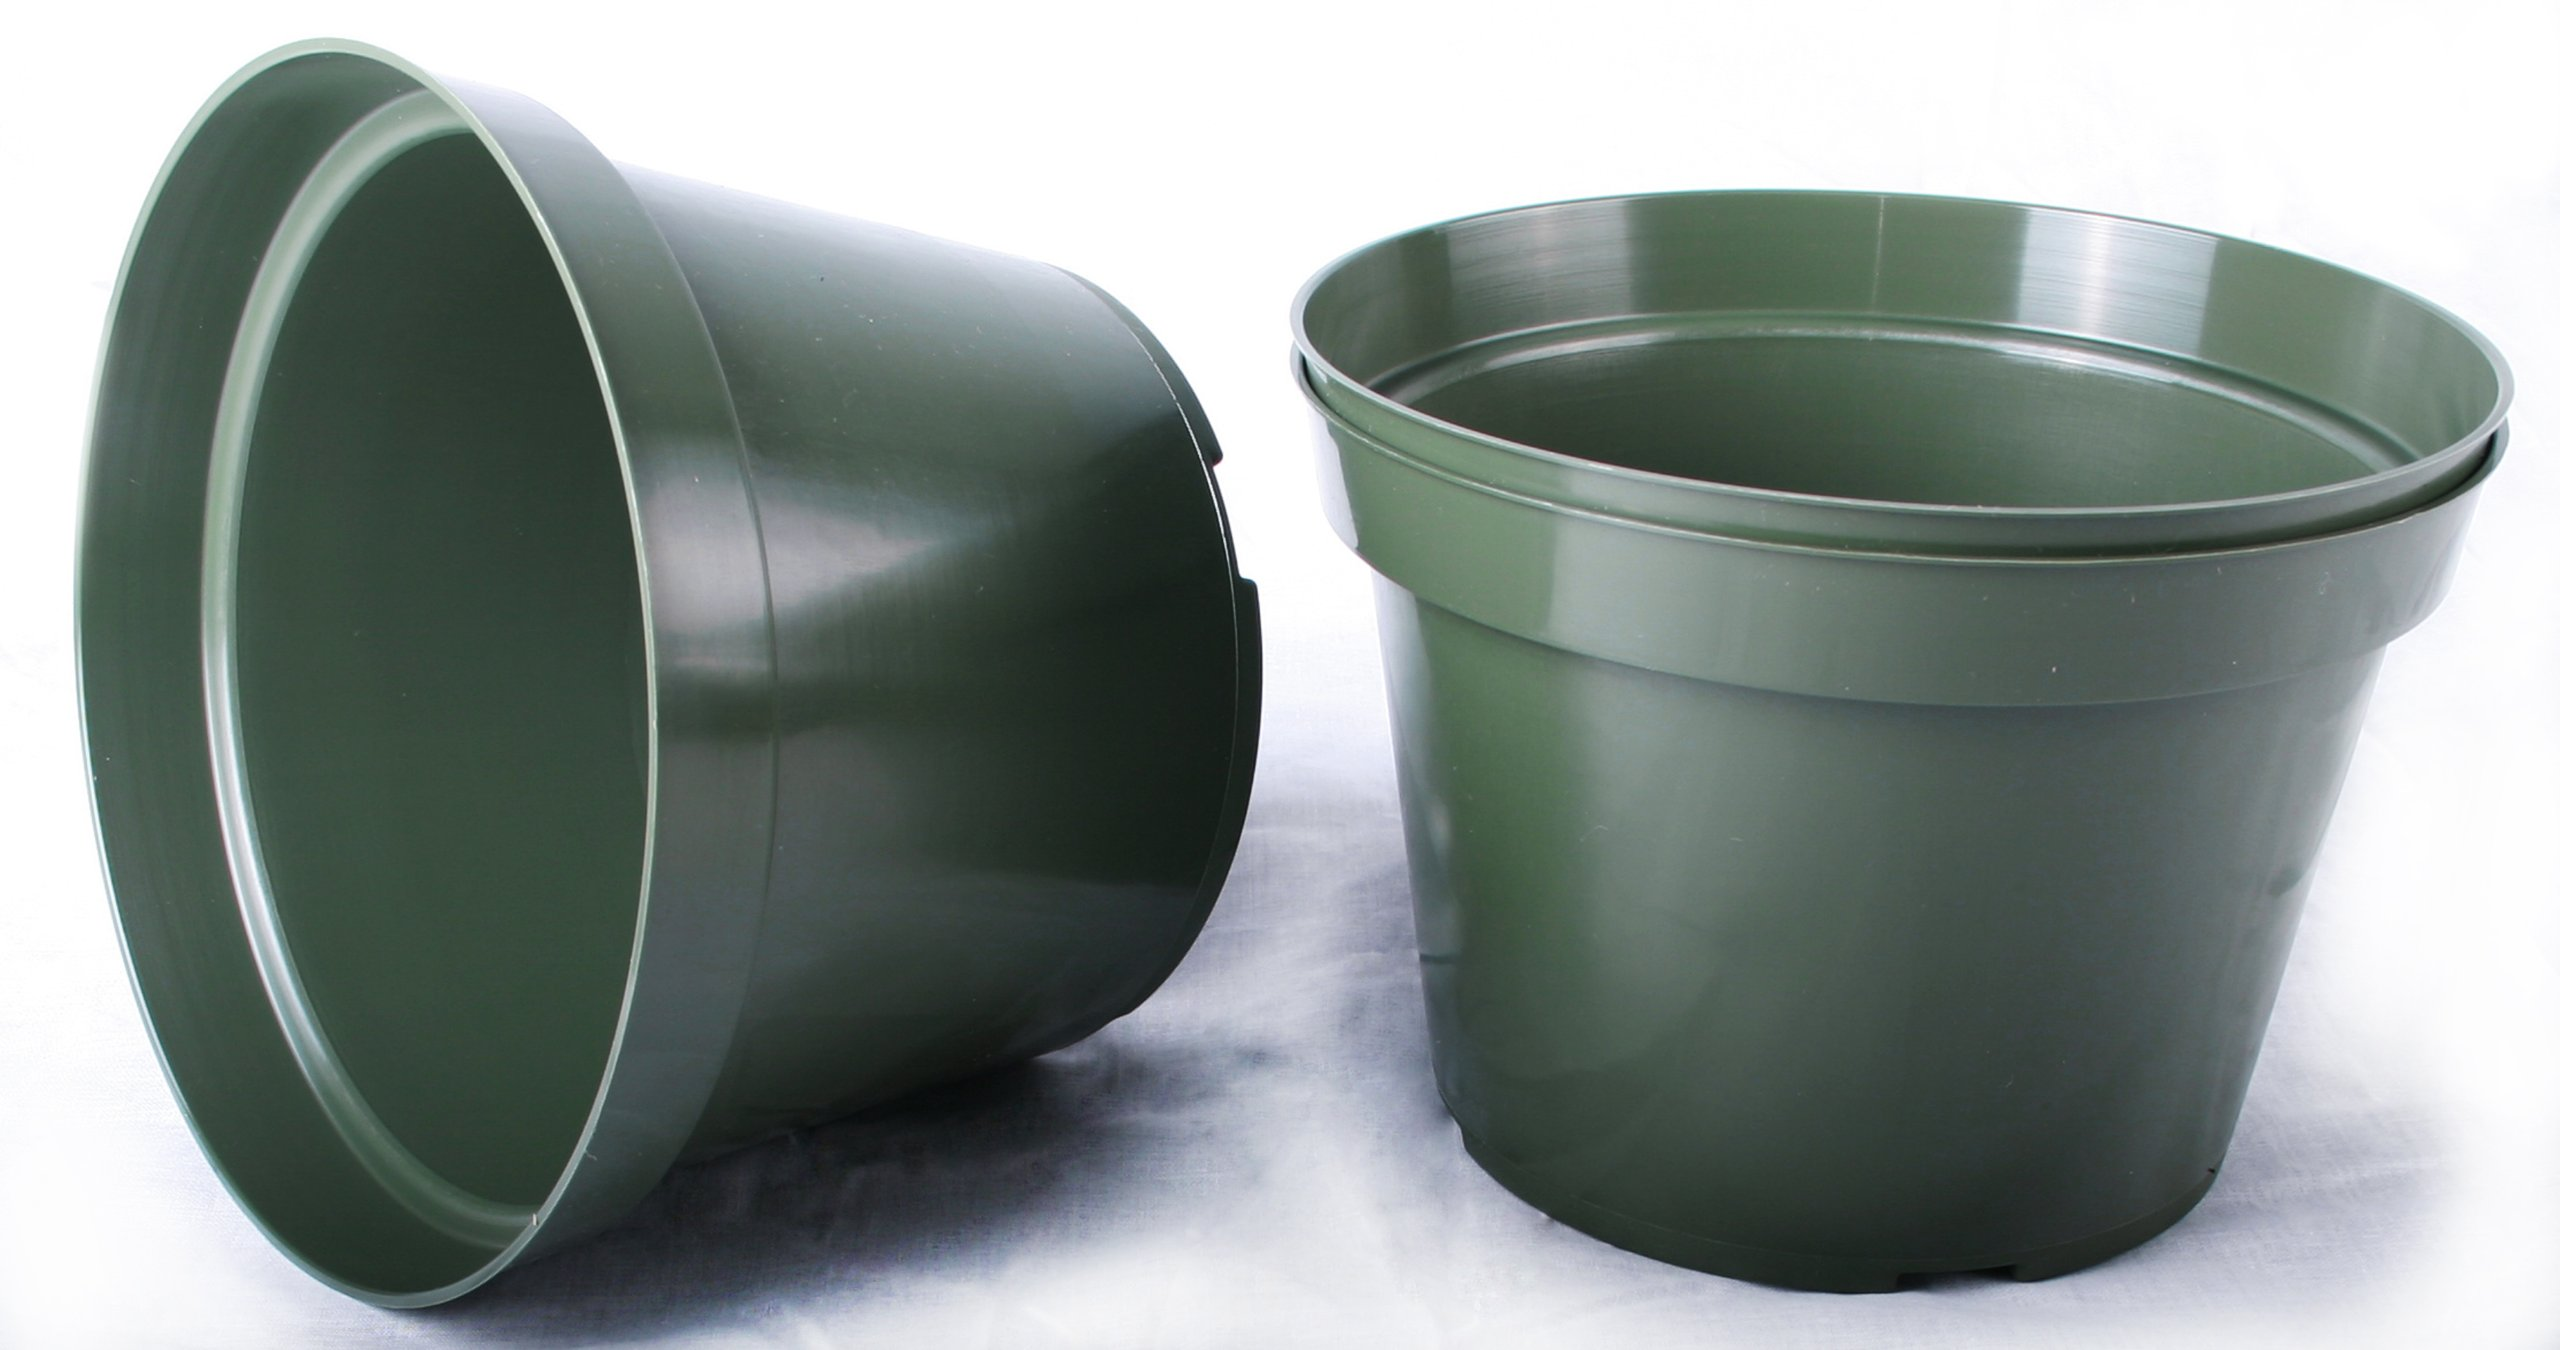 20 NEW 6 Inch Azalea Plastic Nursery Pots ~ Pots ARE 6 Inch Round At the Top and 4.25 Inch Deep.